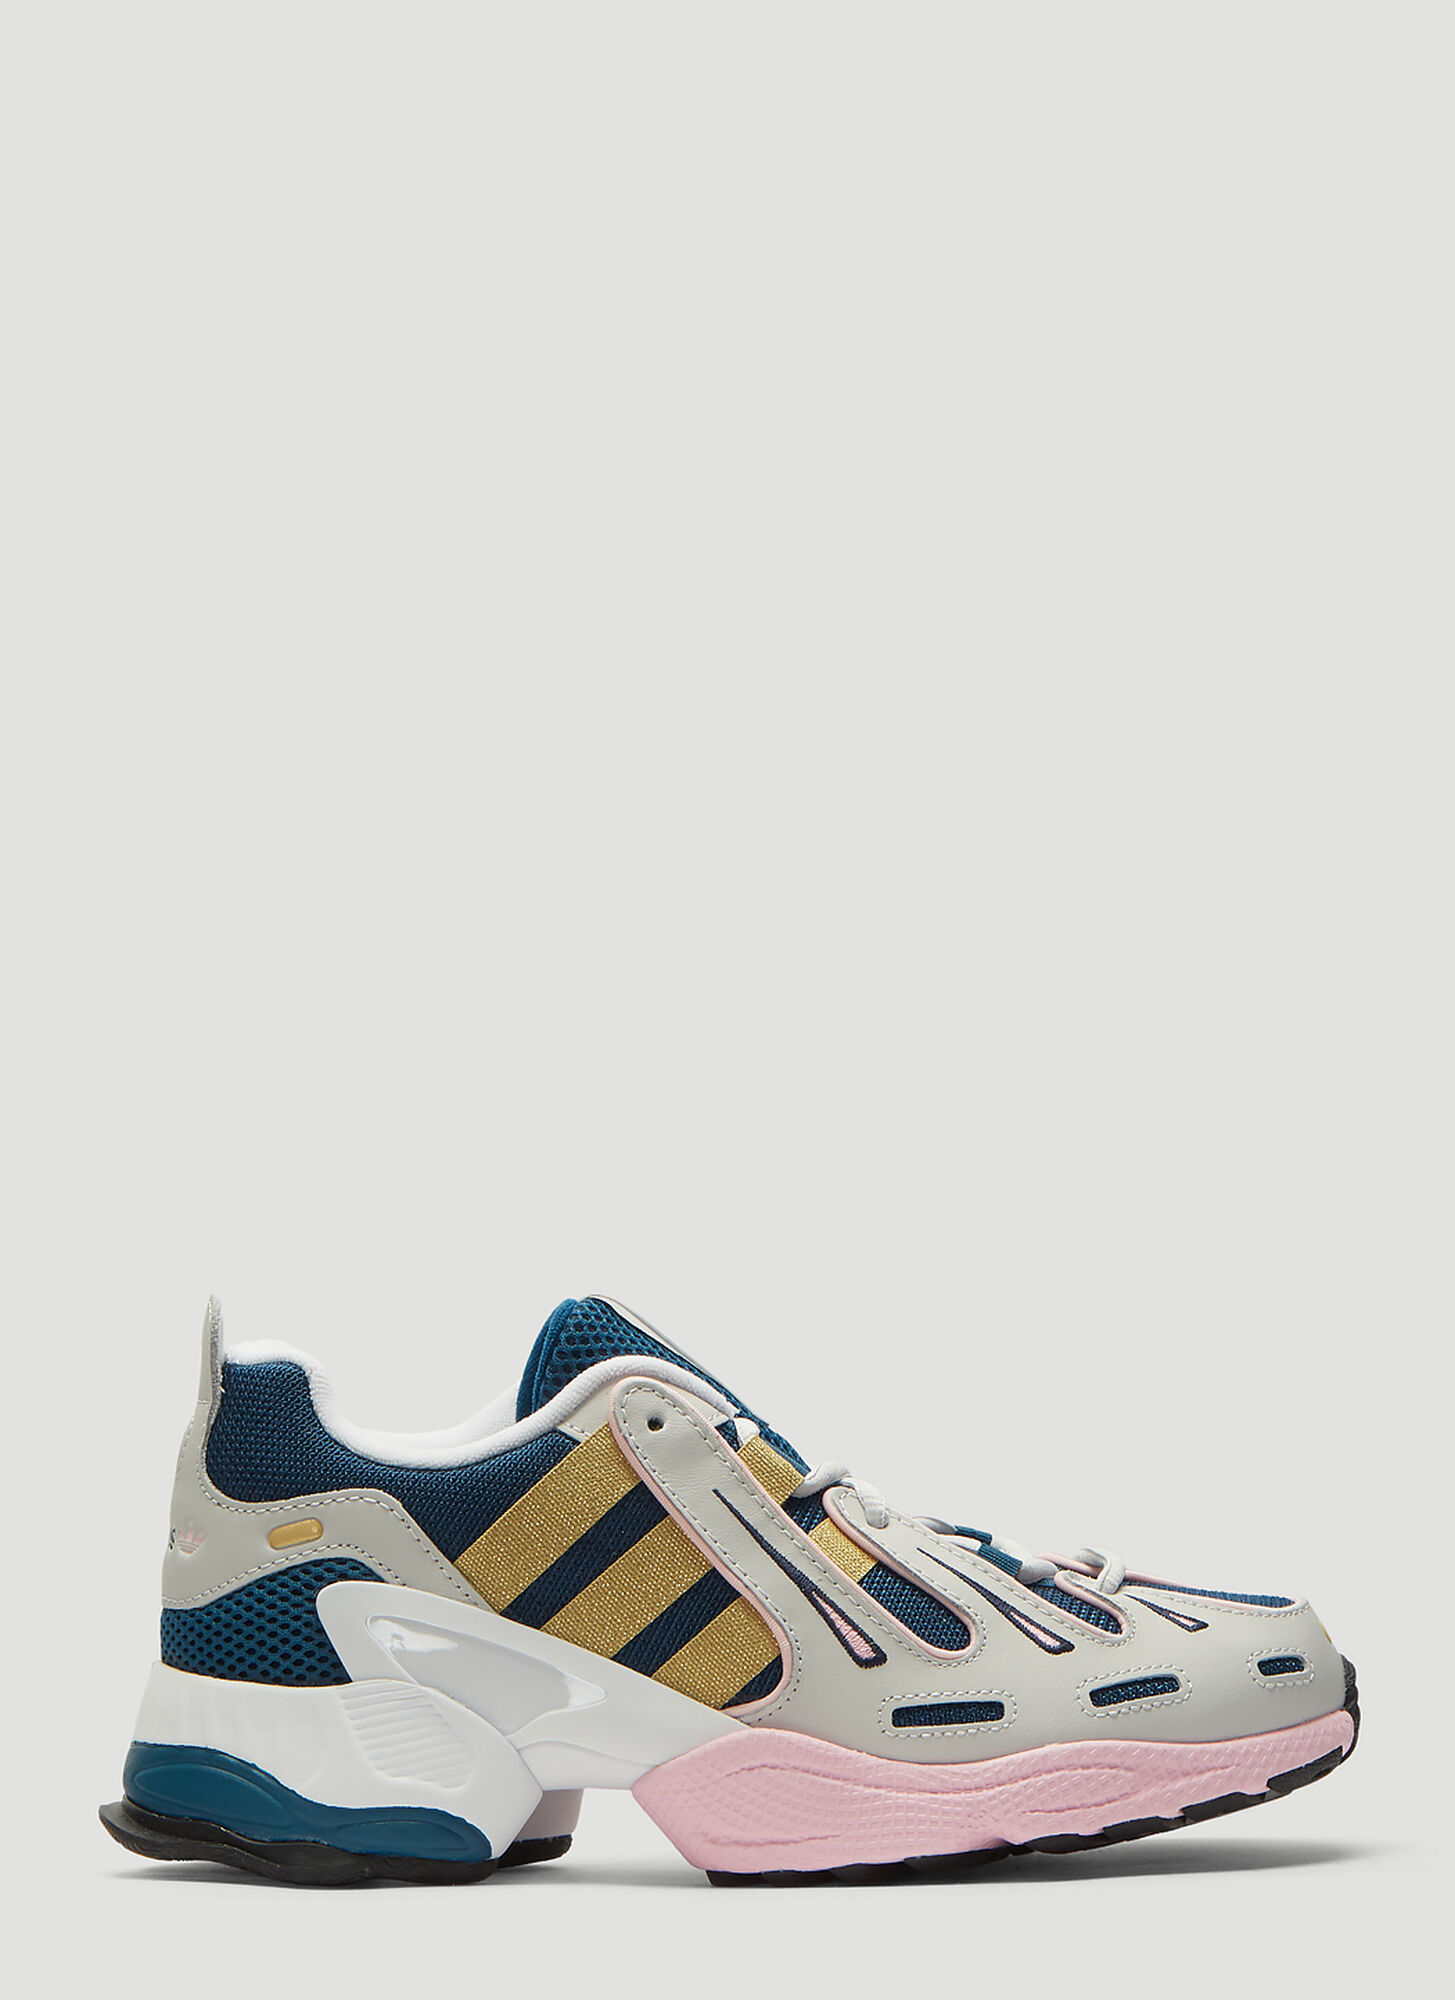 Adidas EQT Gazelle Sneakers in Blue